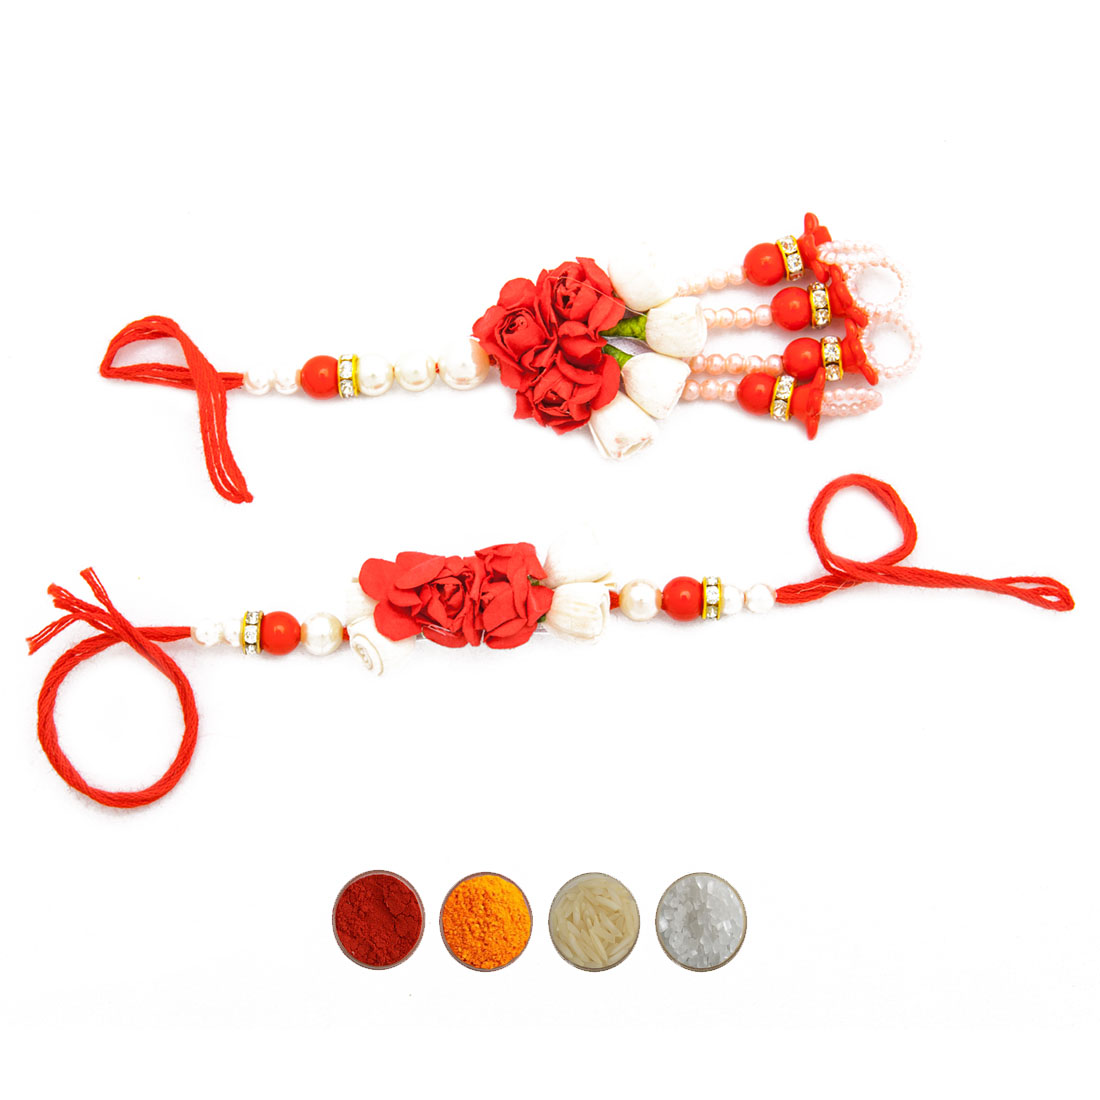 Rakhi Set for Bhaiya and Bhabhi